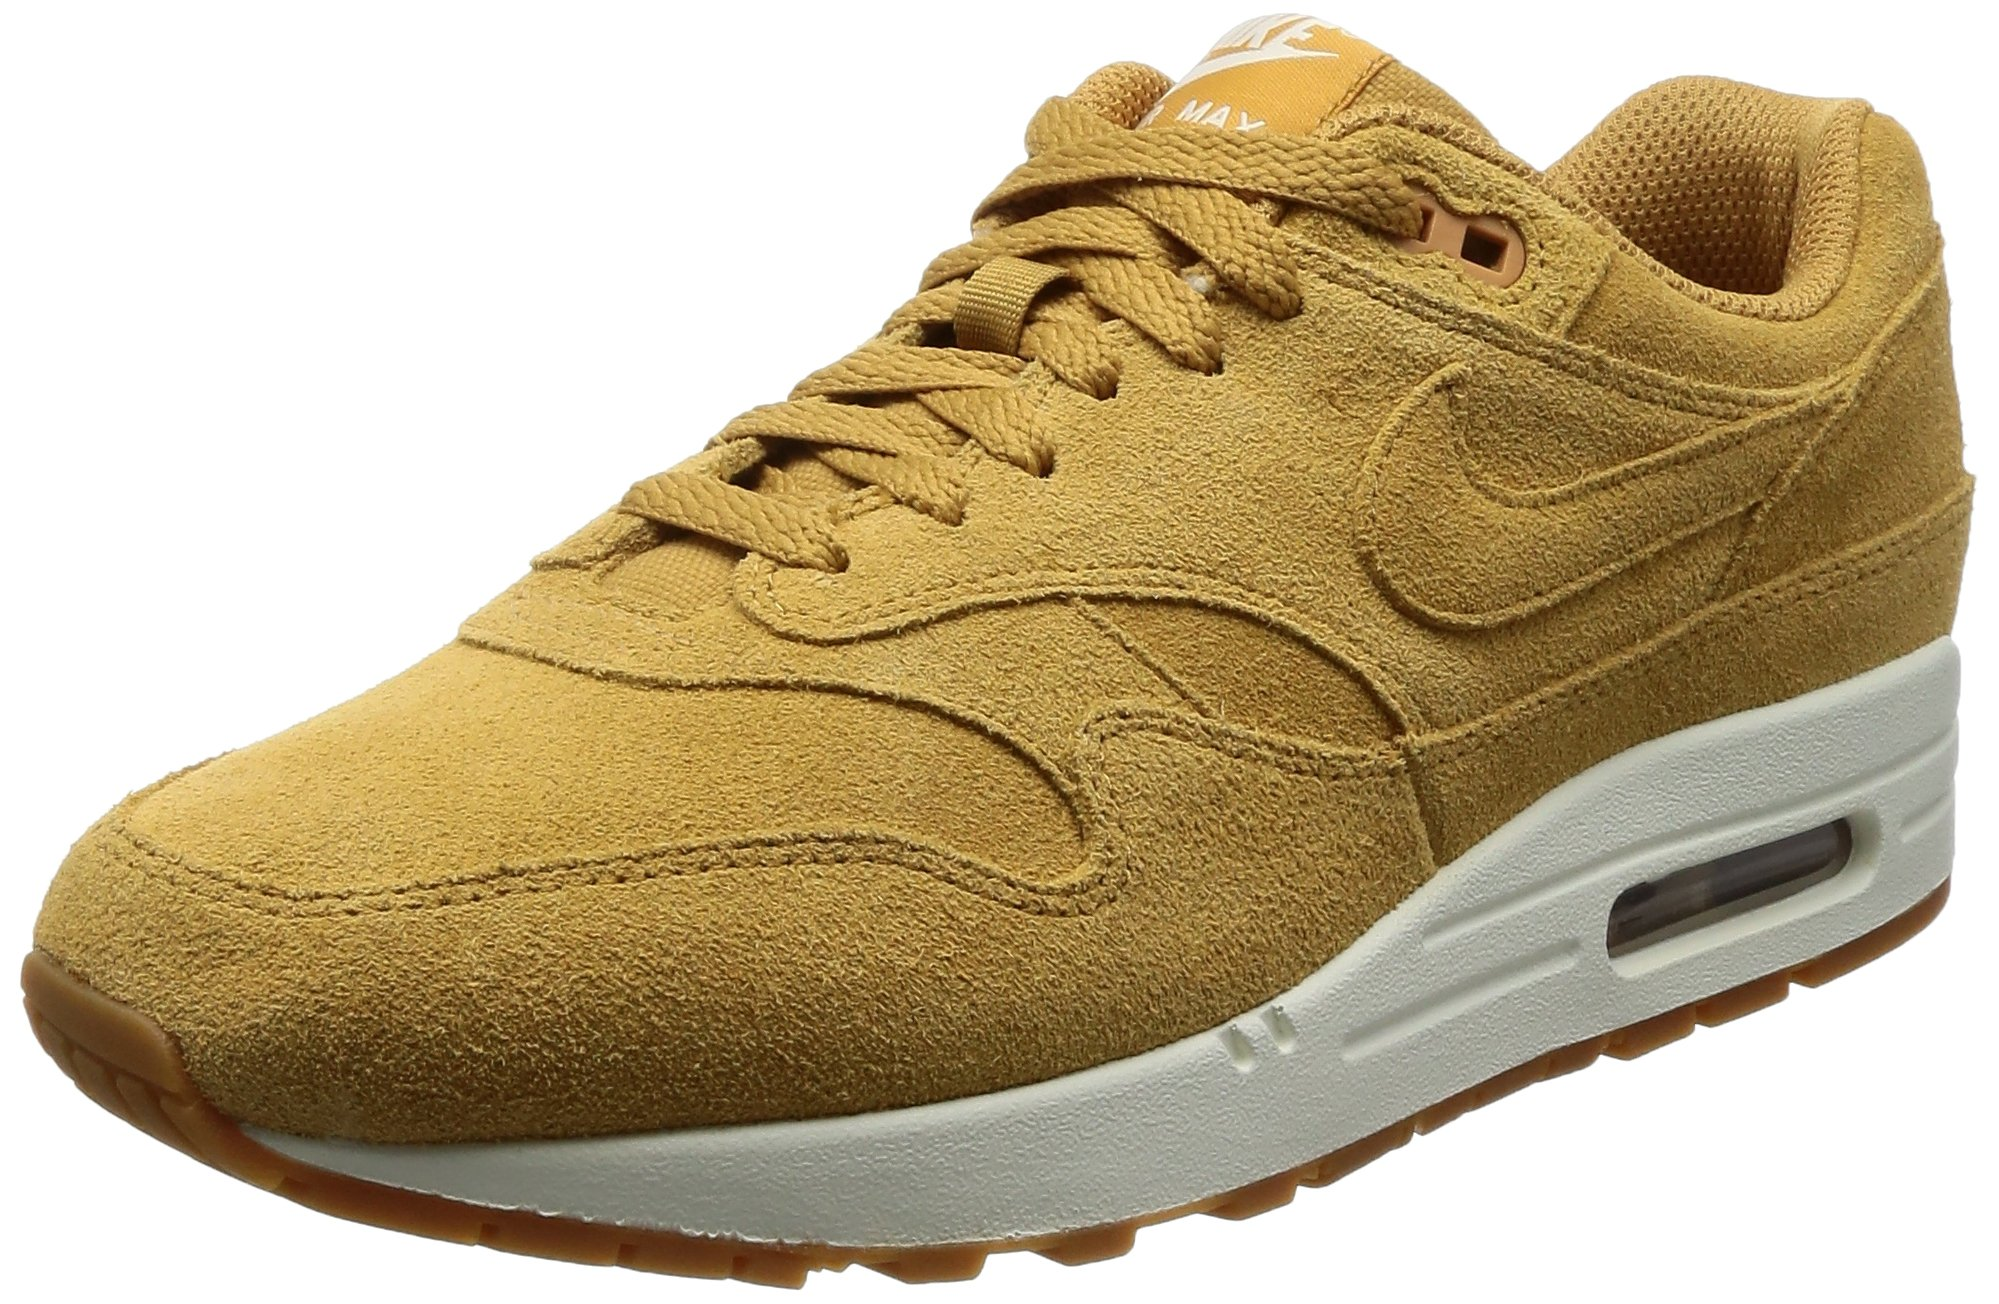 separation shoes 604d5 719a2 Galleon - NIKE Men s Air Max 1 Premium Medium Brown 875844-203 (Size  10)